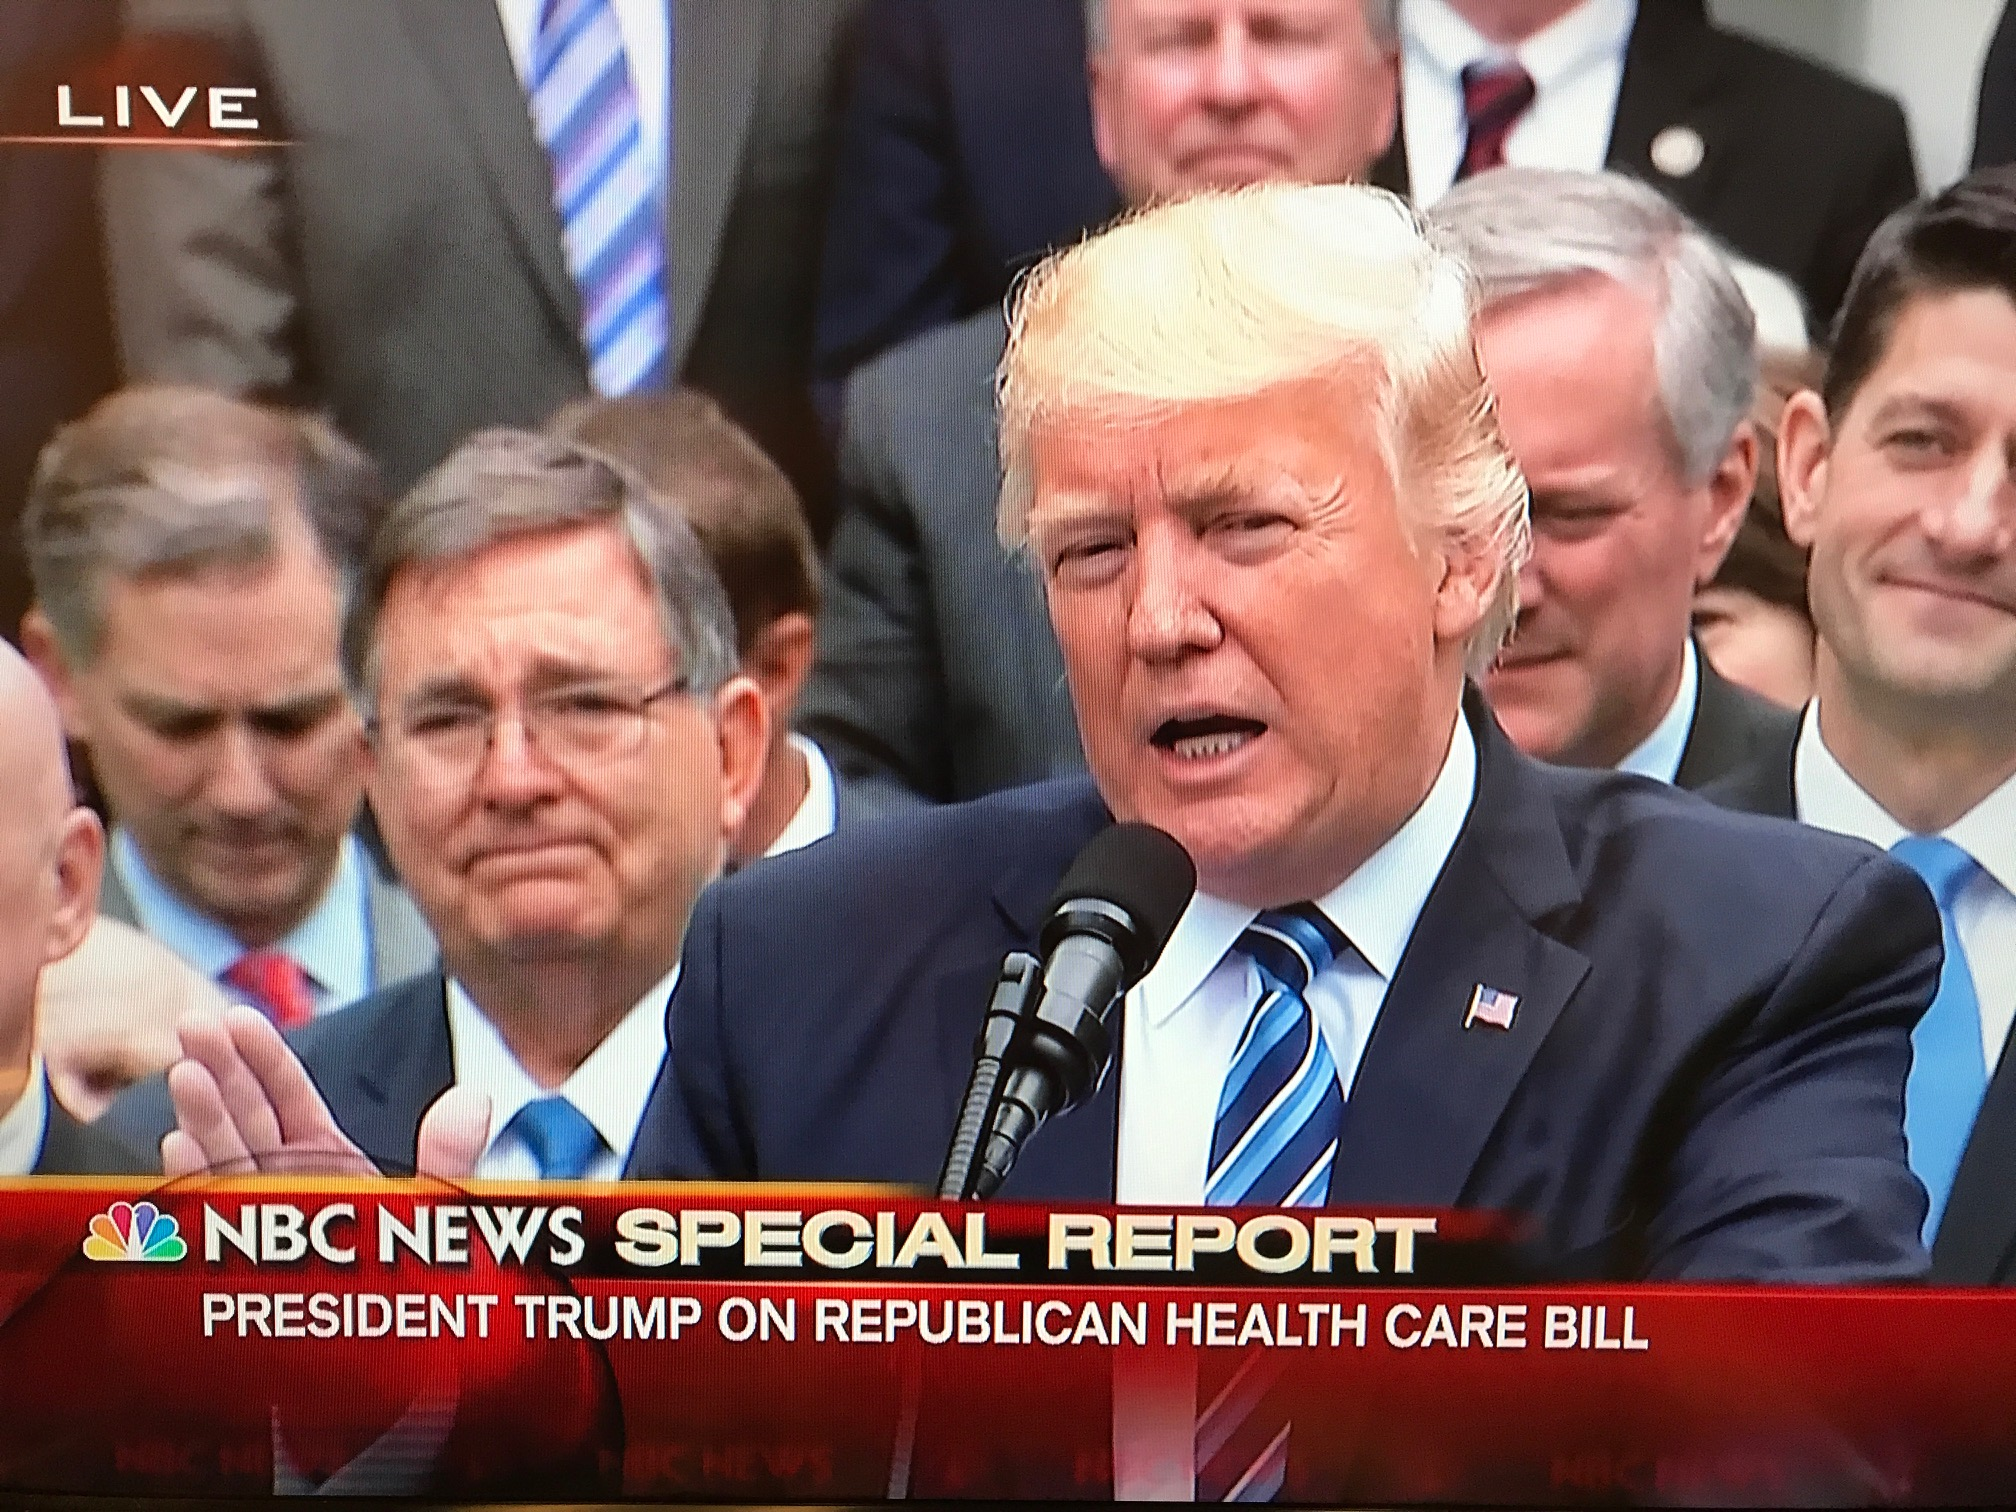 republican healthcare bill